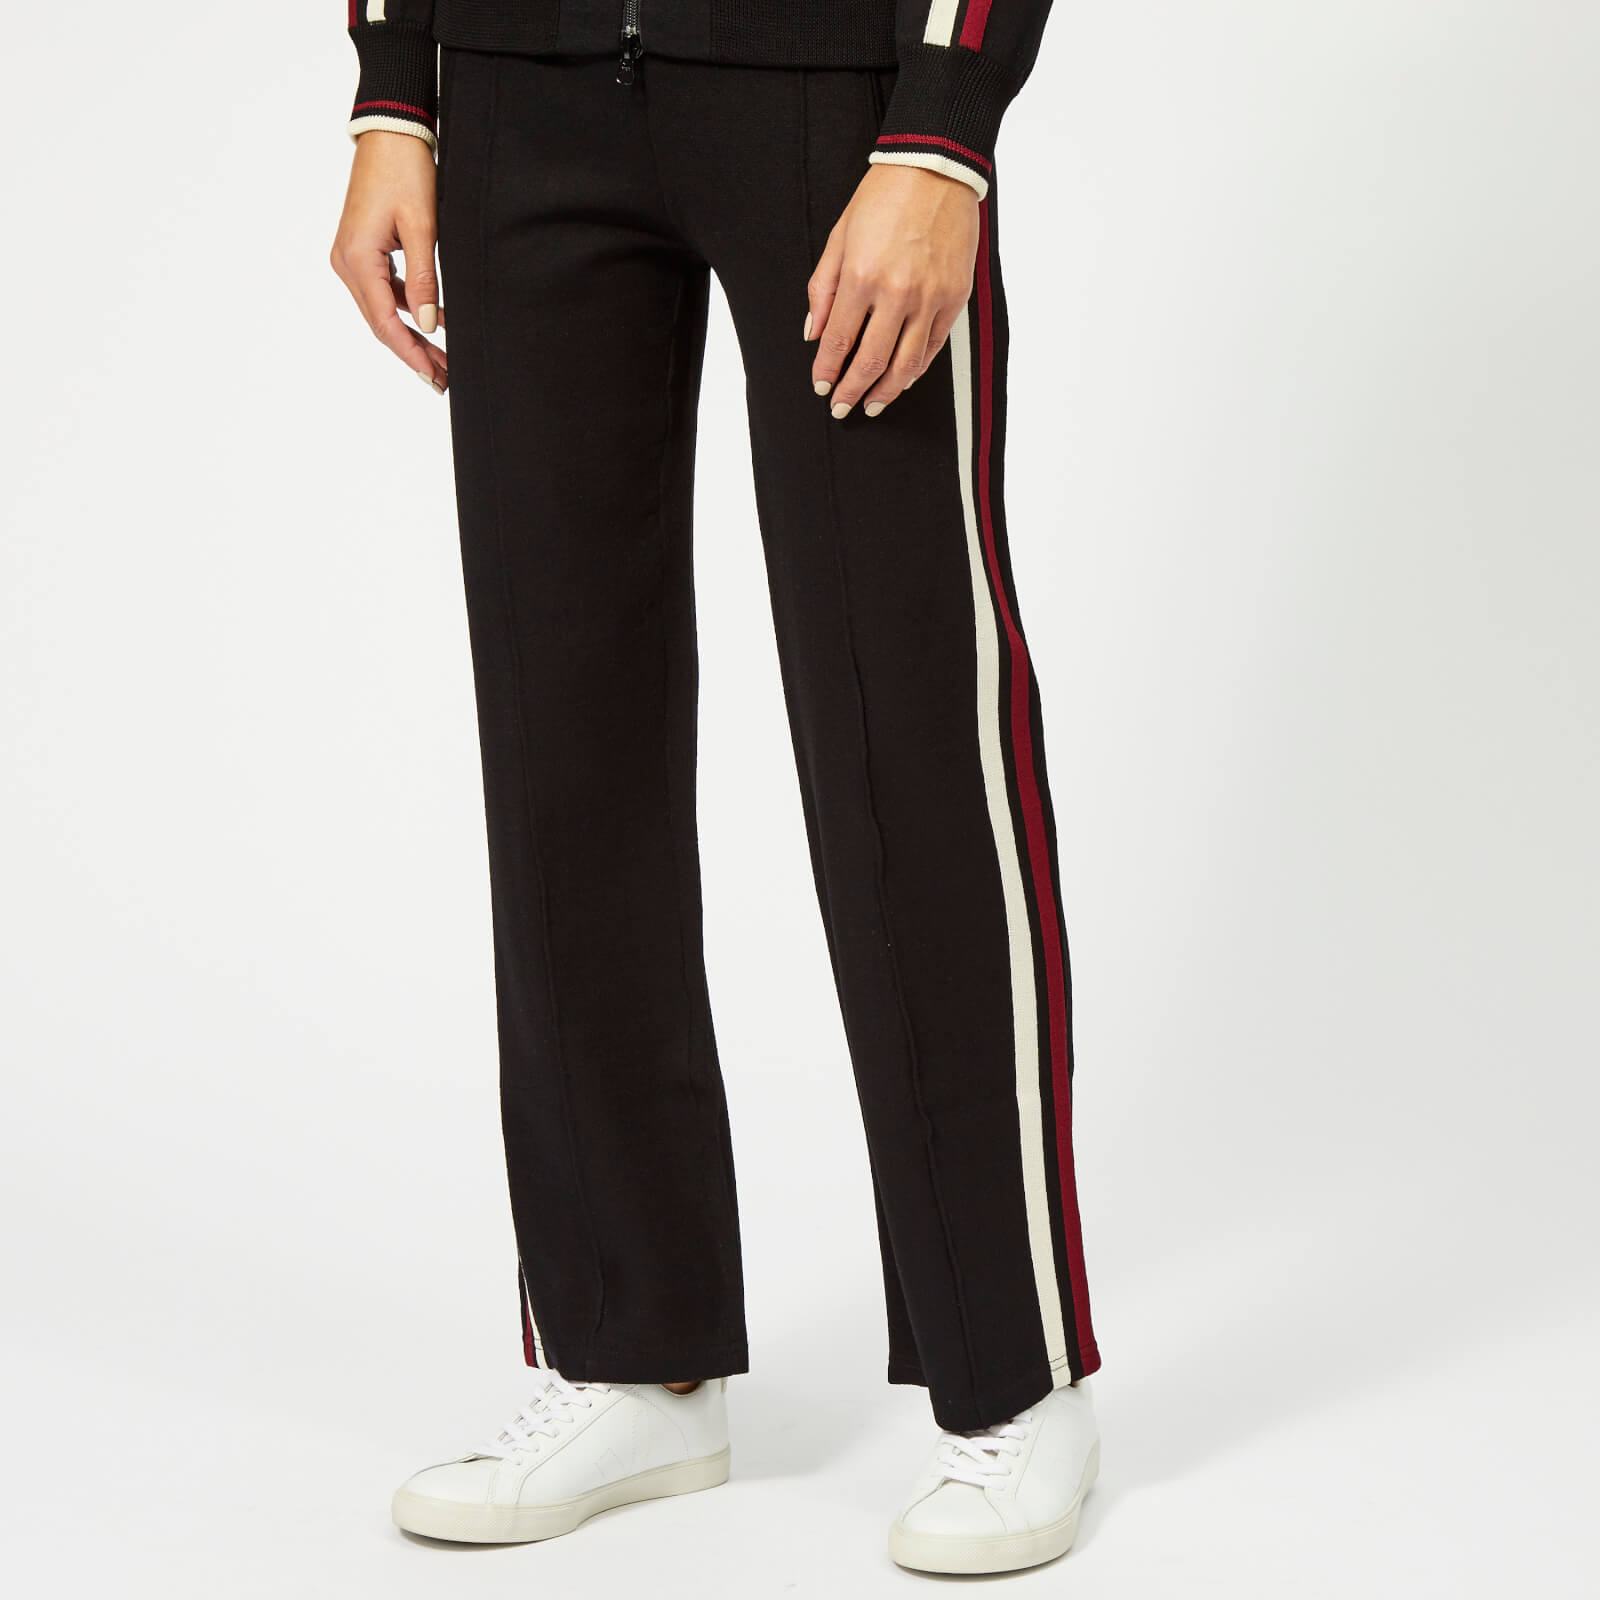 624be4d43e65 Isabel Marant Étoile Women s Dobbs Trousers - Black Burgundy - Free UK  Delivery over £50